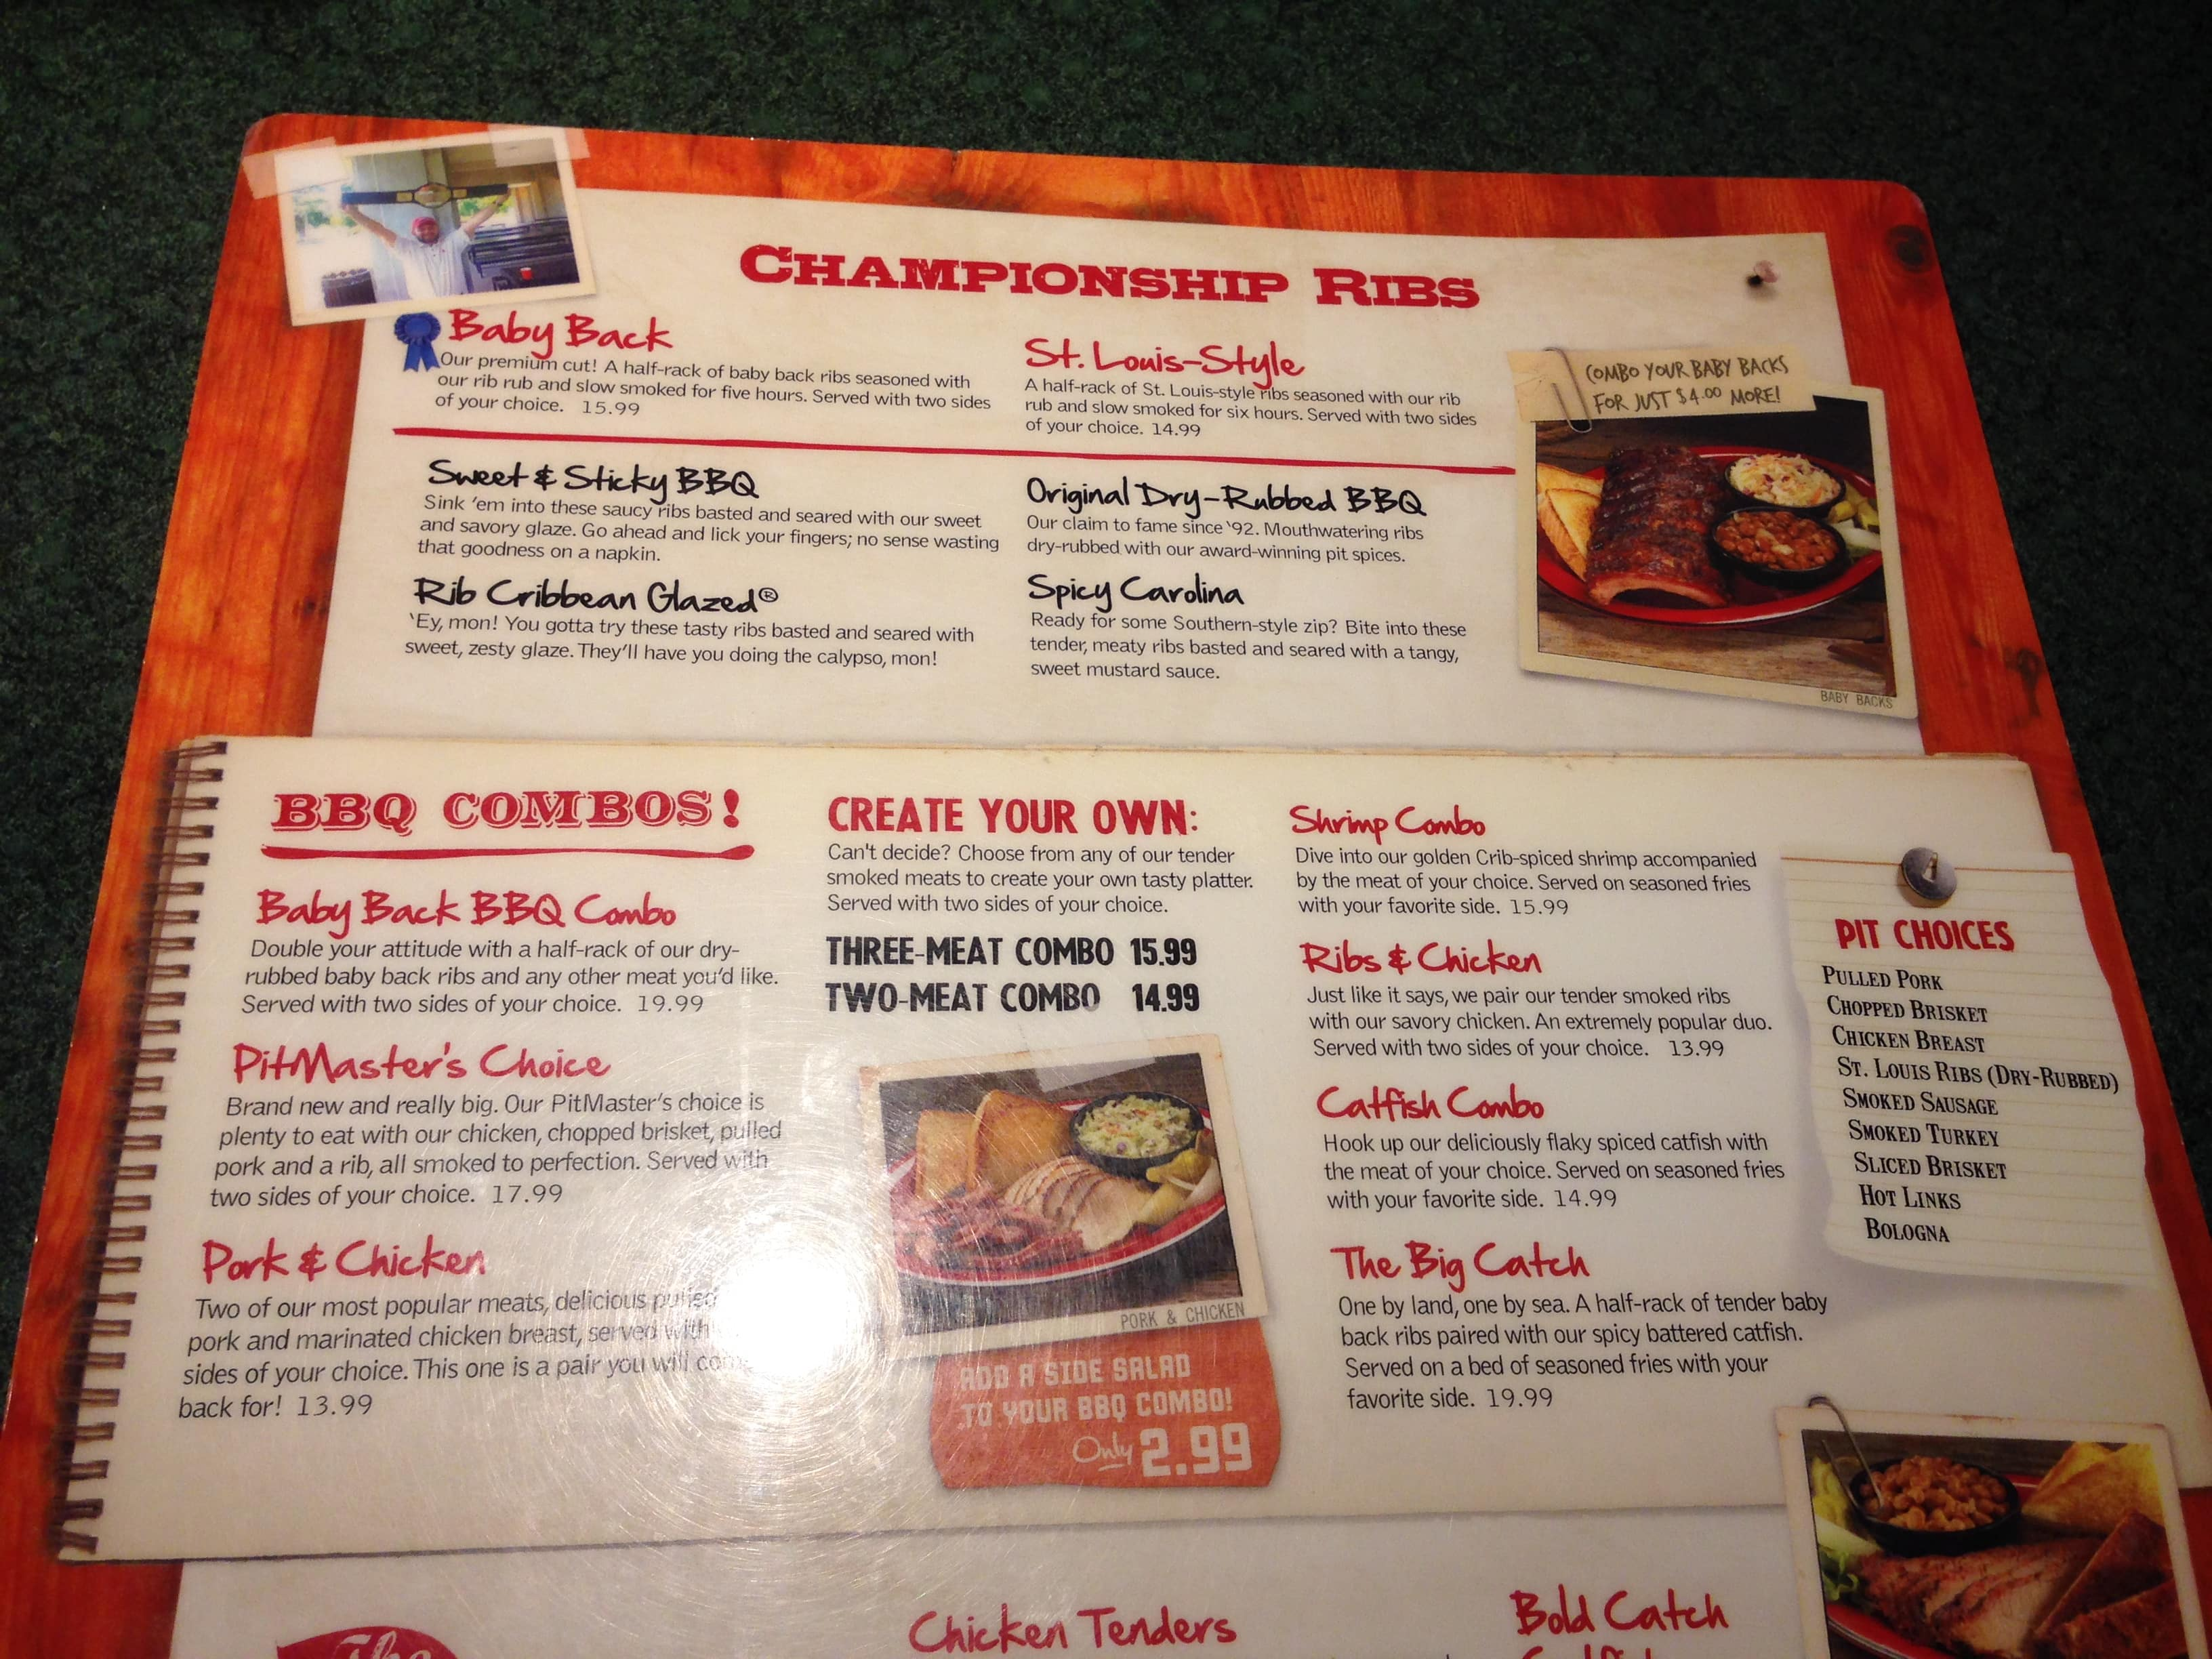 Rib Crib Ada Menu